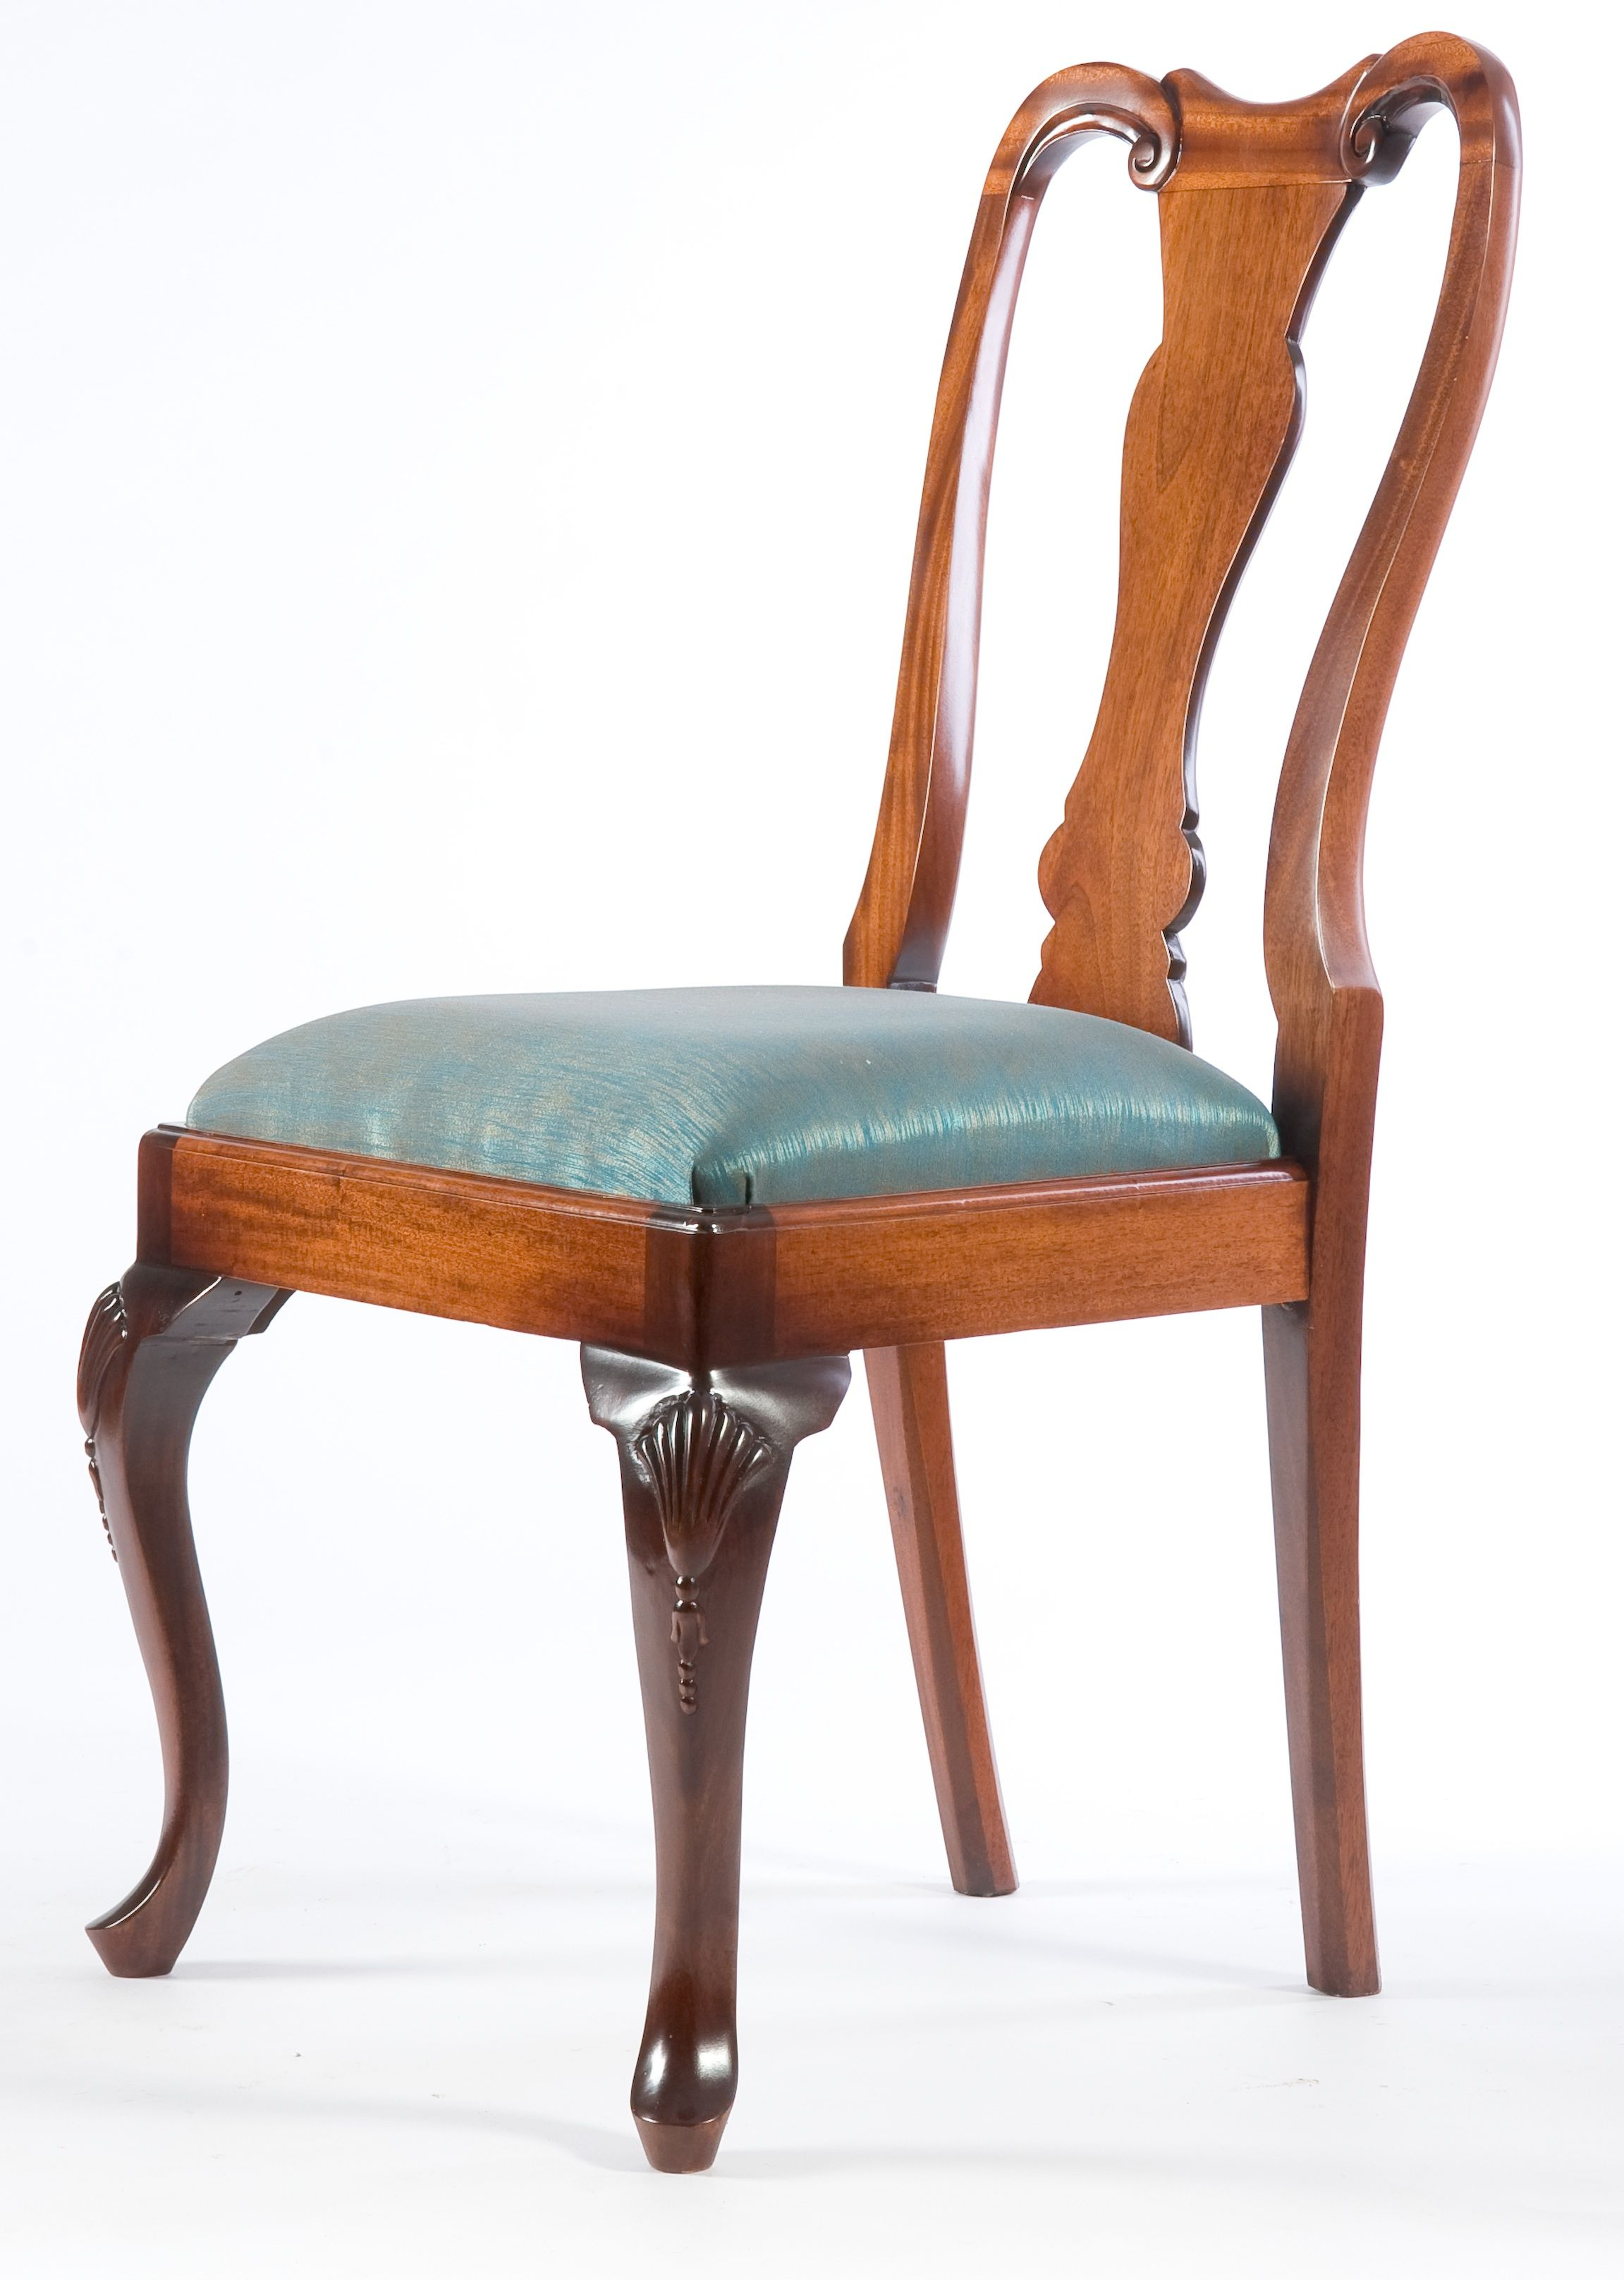 Antique victorian dining chairs - Queen Anne Dining Chair A Simple And Elegant Chair Which Was Extremely Popular In The